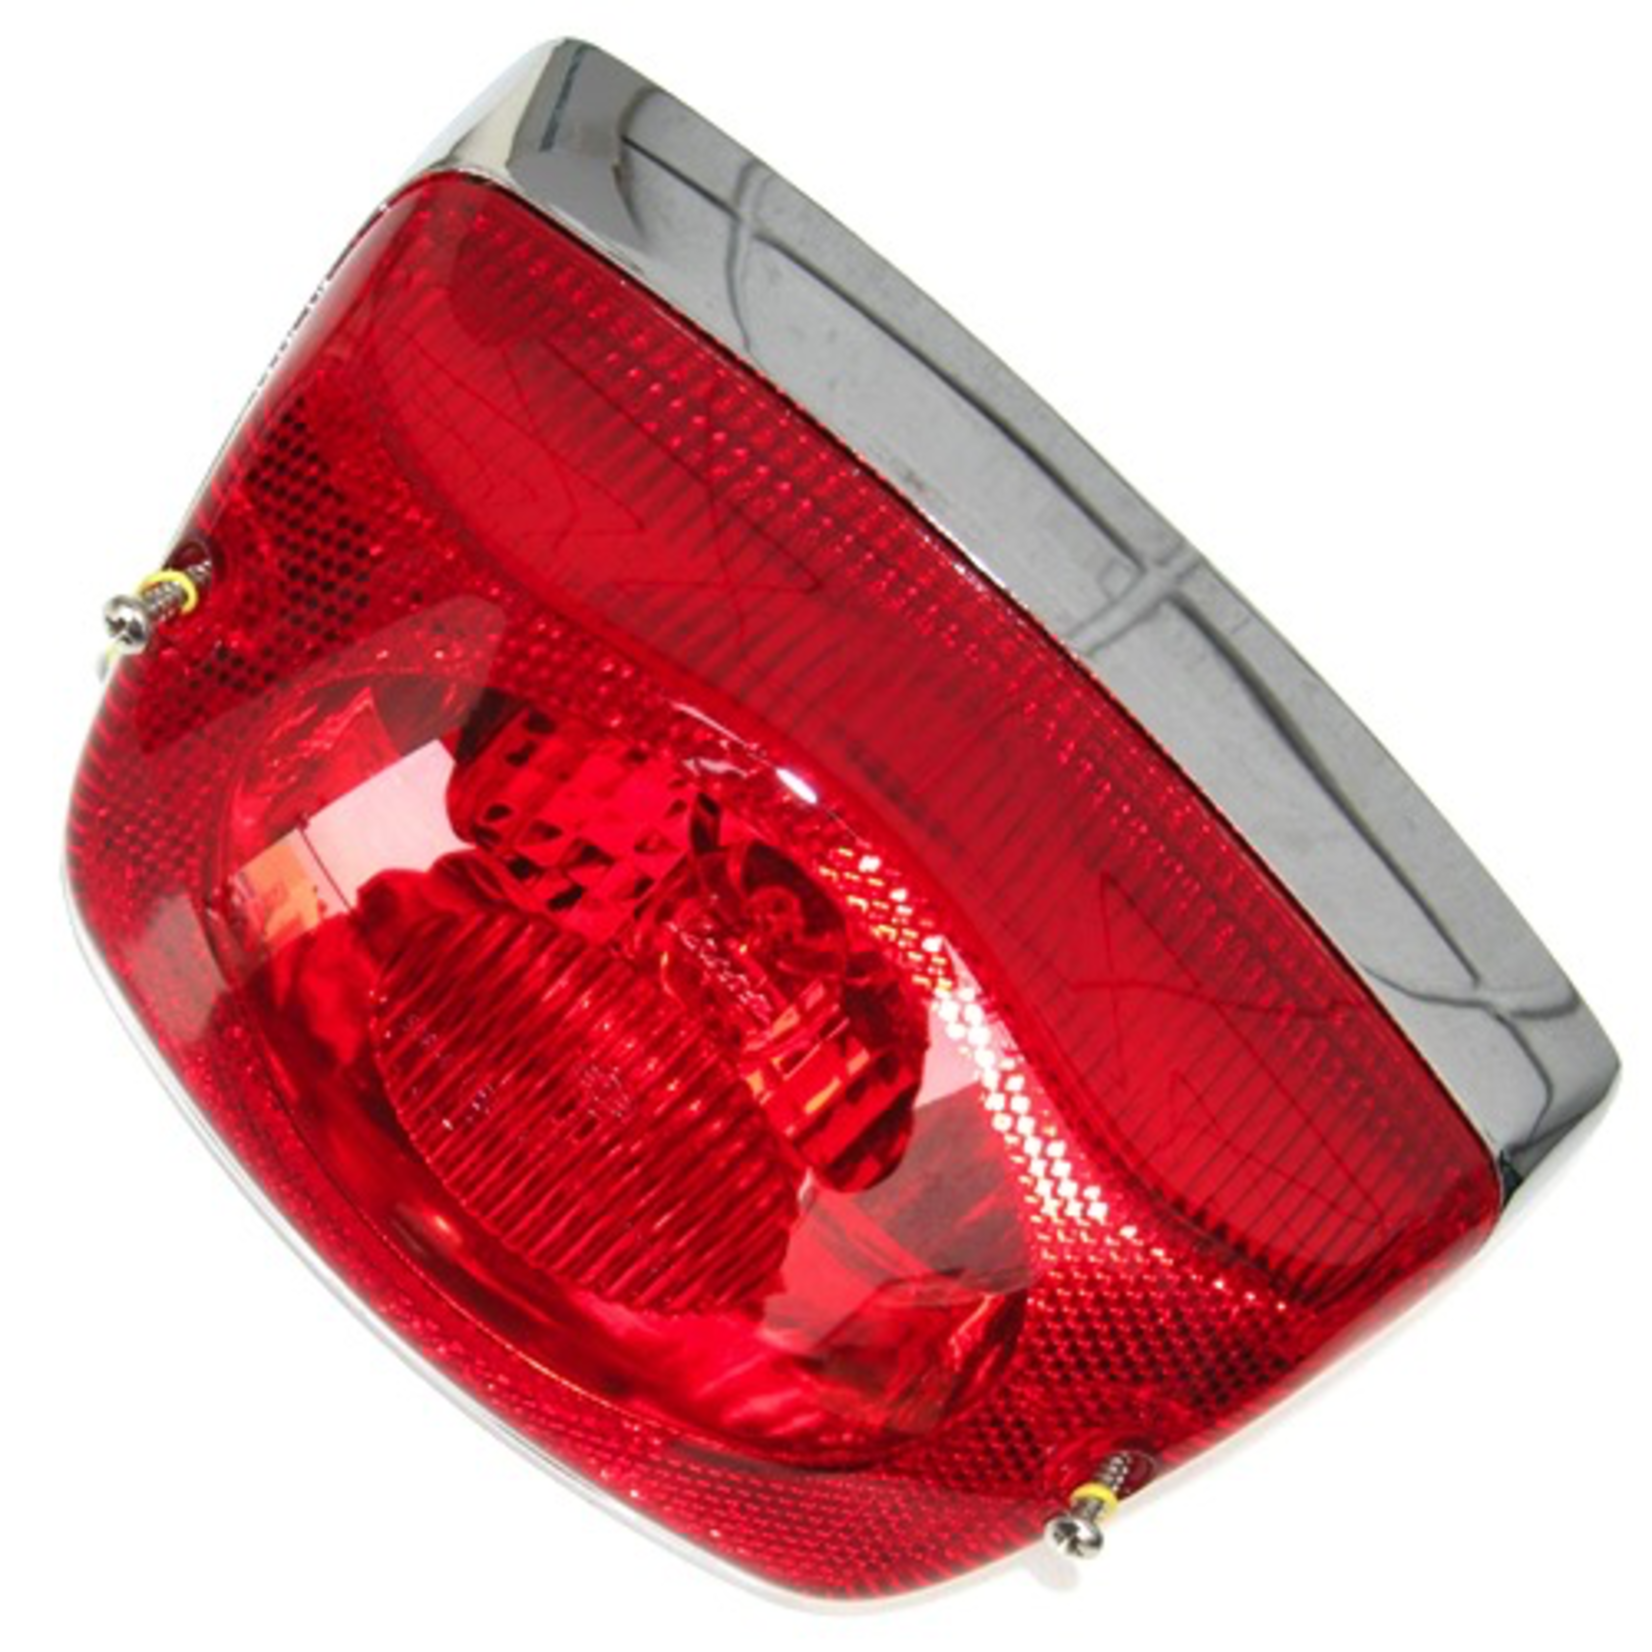 Parts Tail Lamp, LX50/150 (63864)